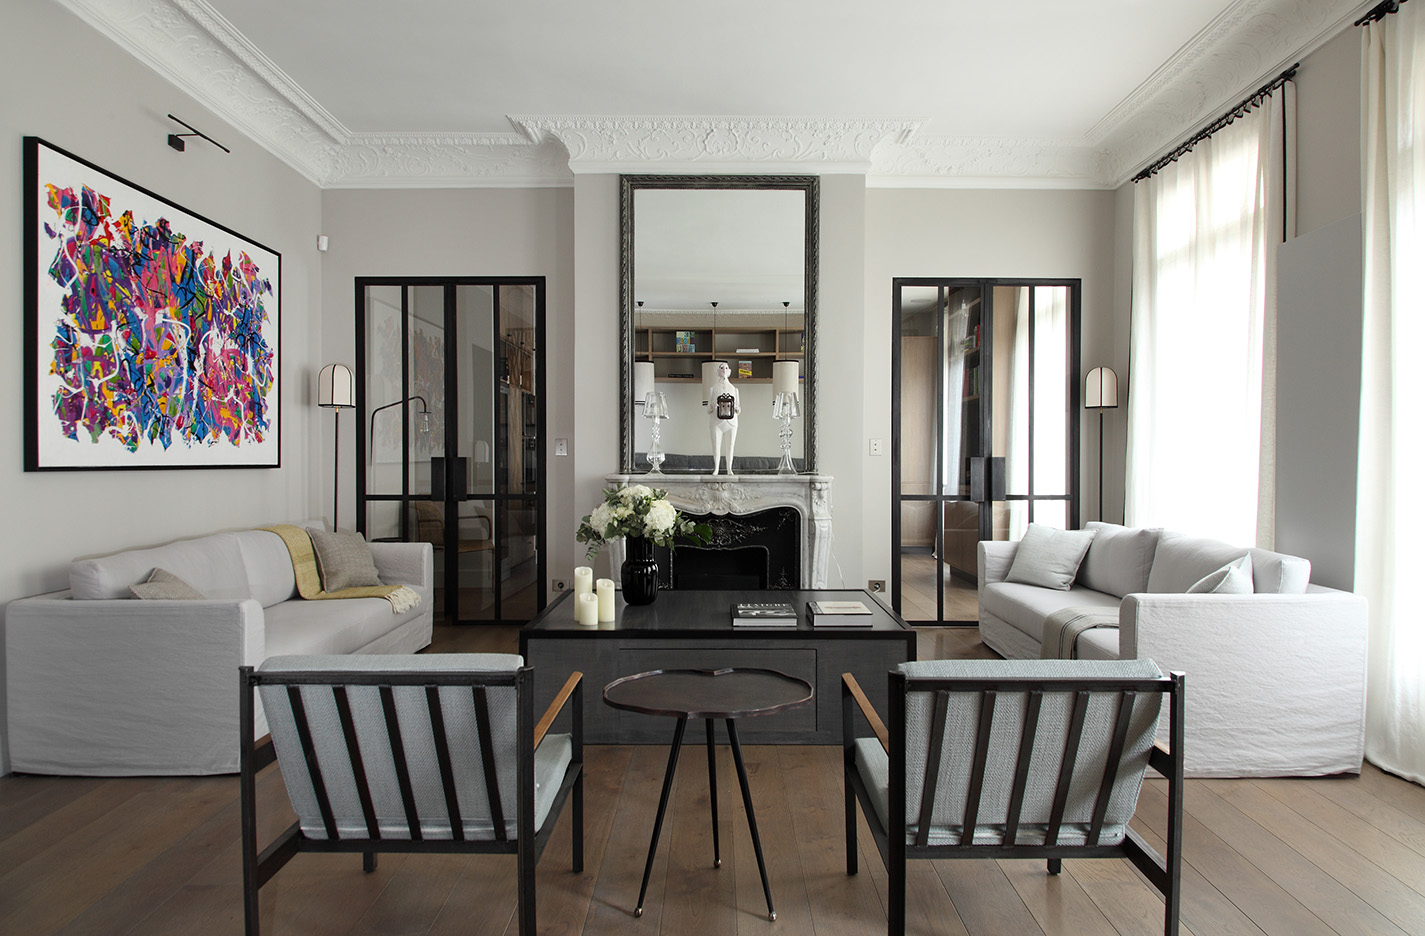 2eme porte a gauche int rieur parisien par david gaillard for Interieur chic parisien